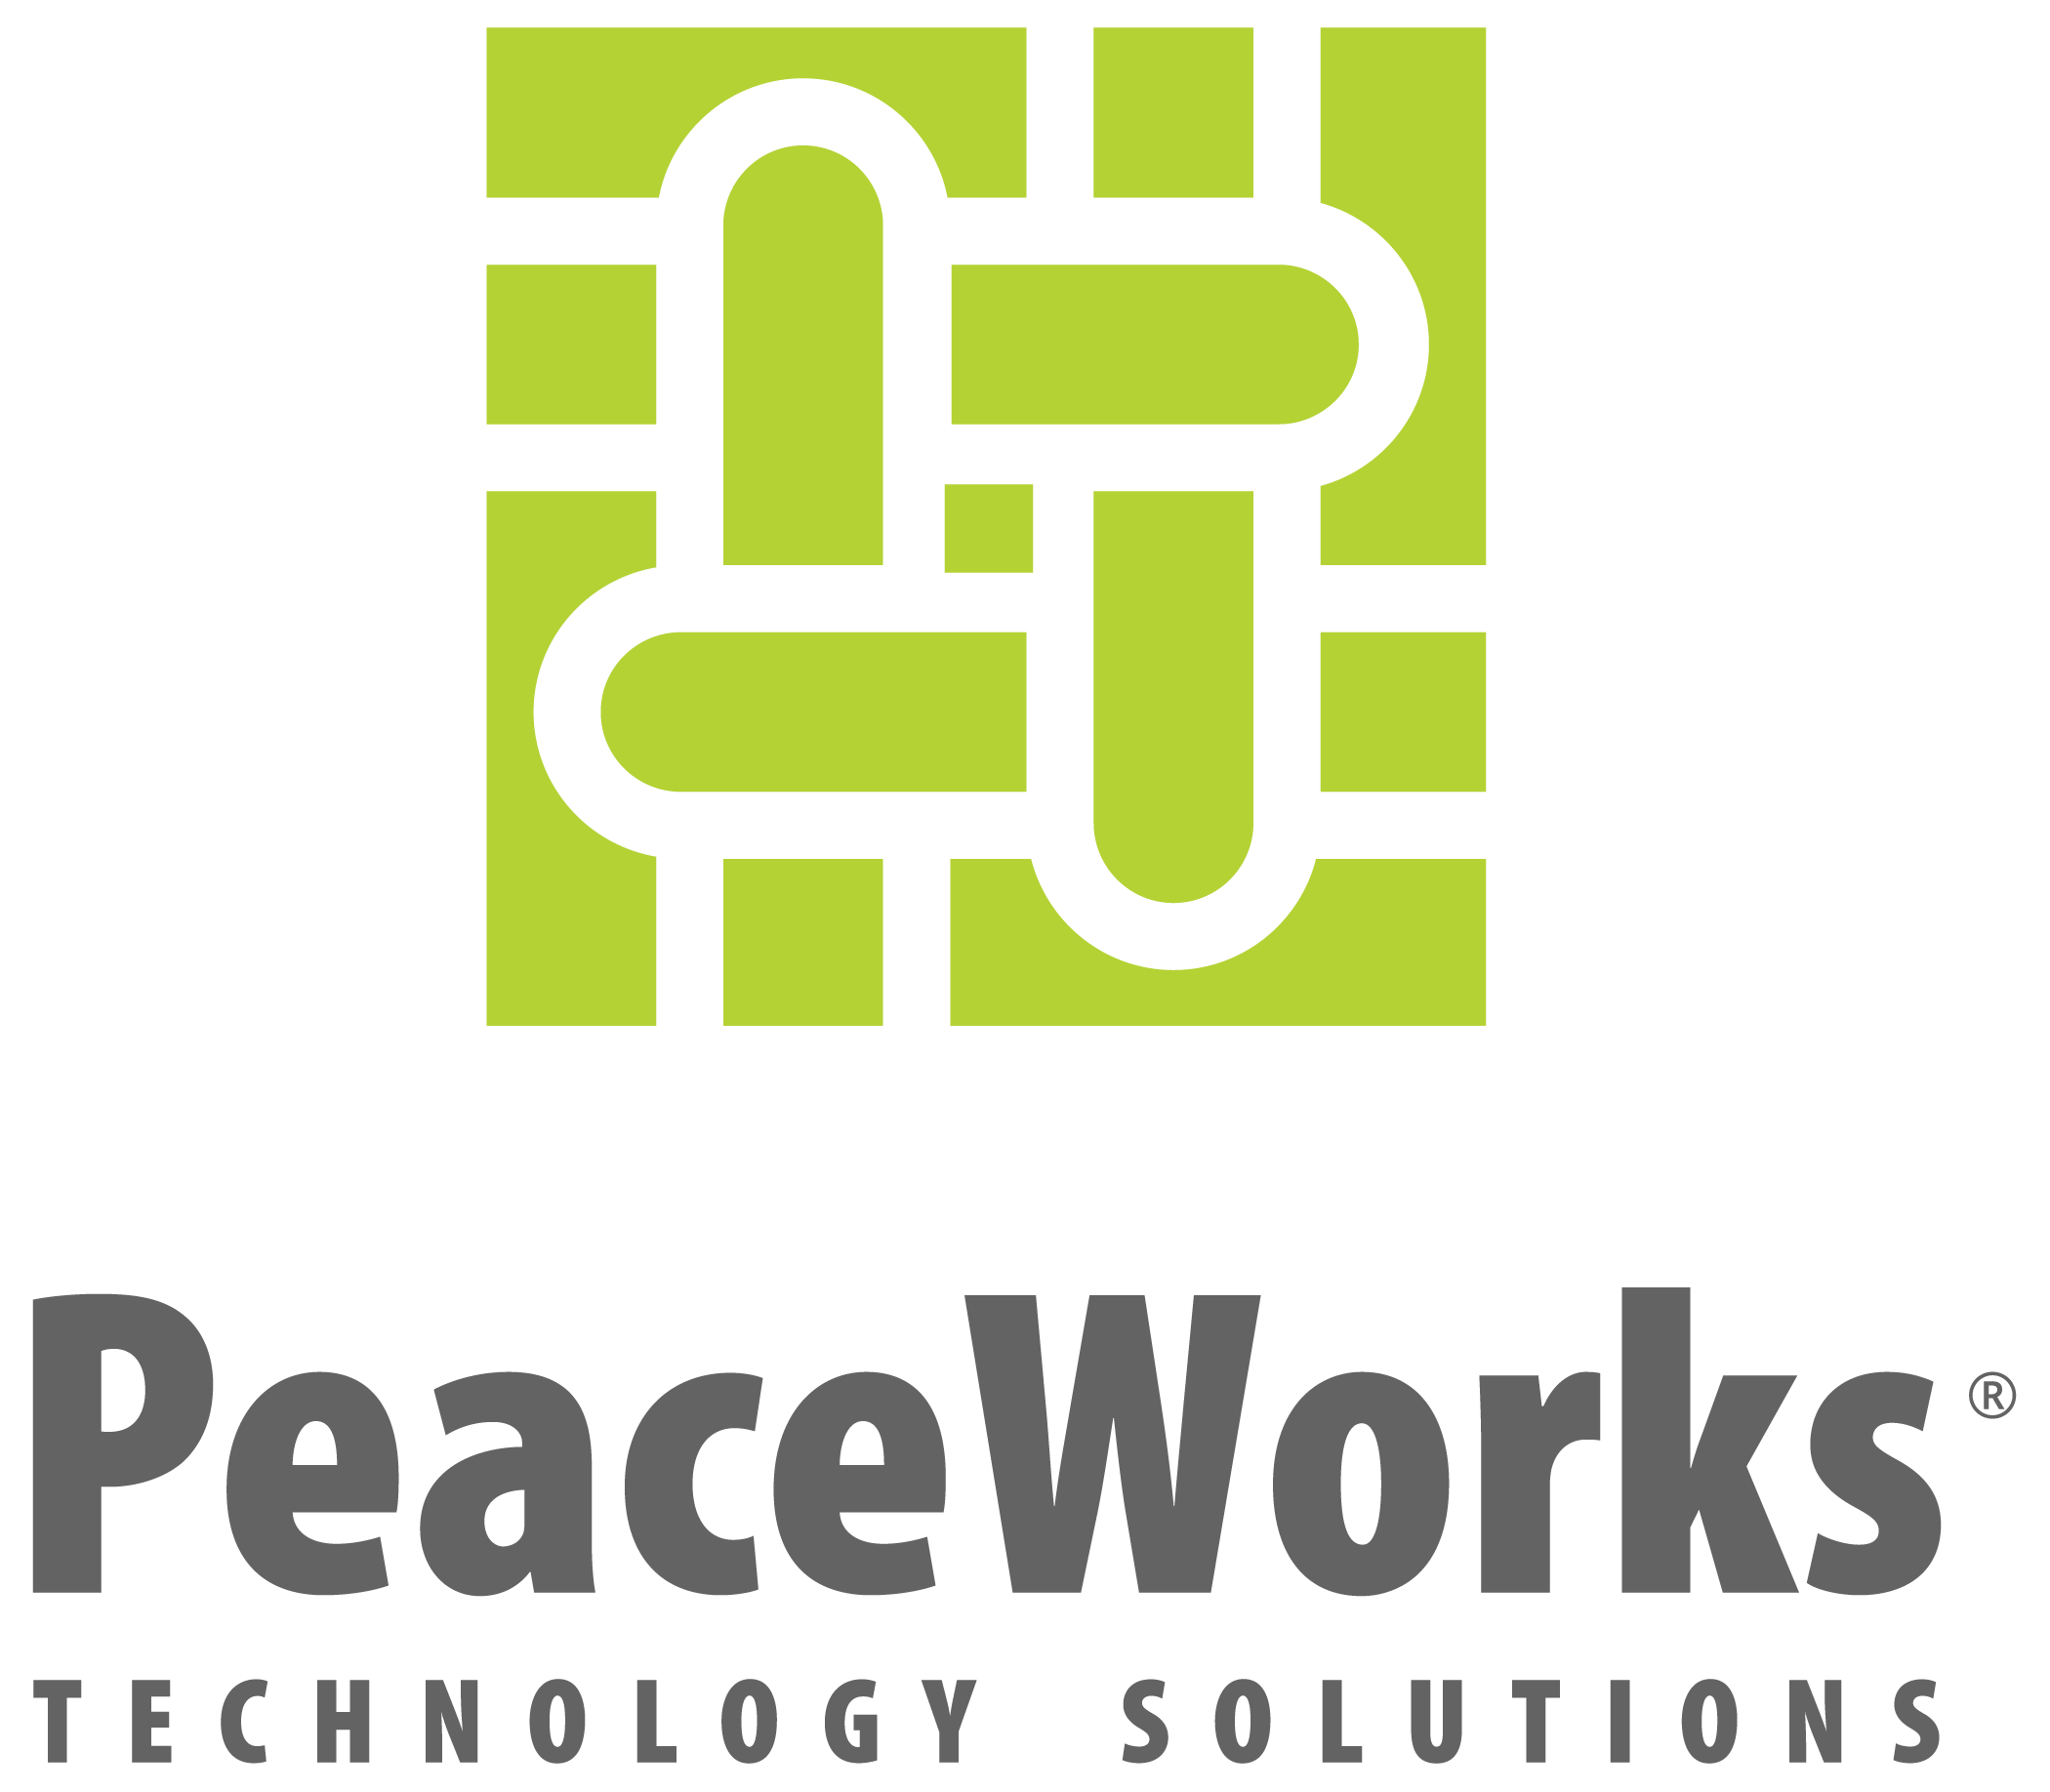 logo for PeaceWorks Technology Solutions